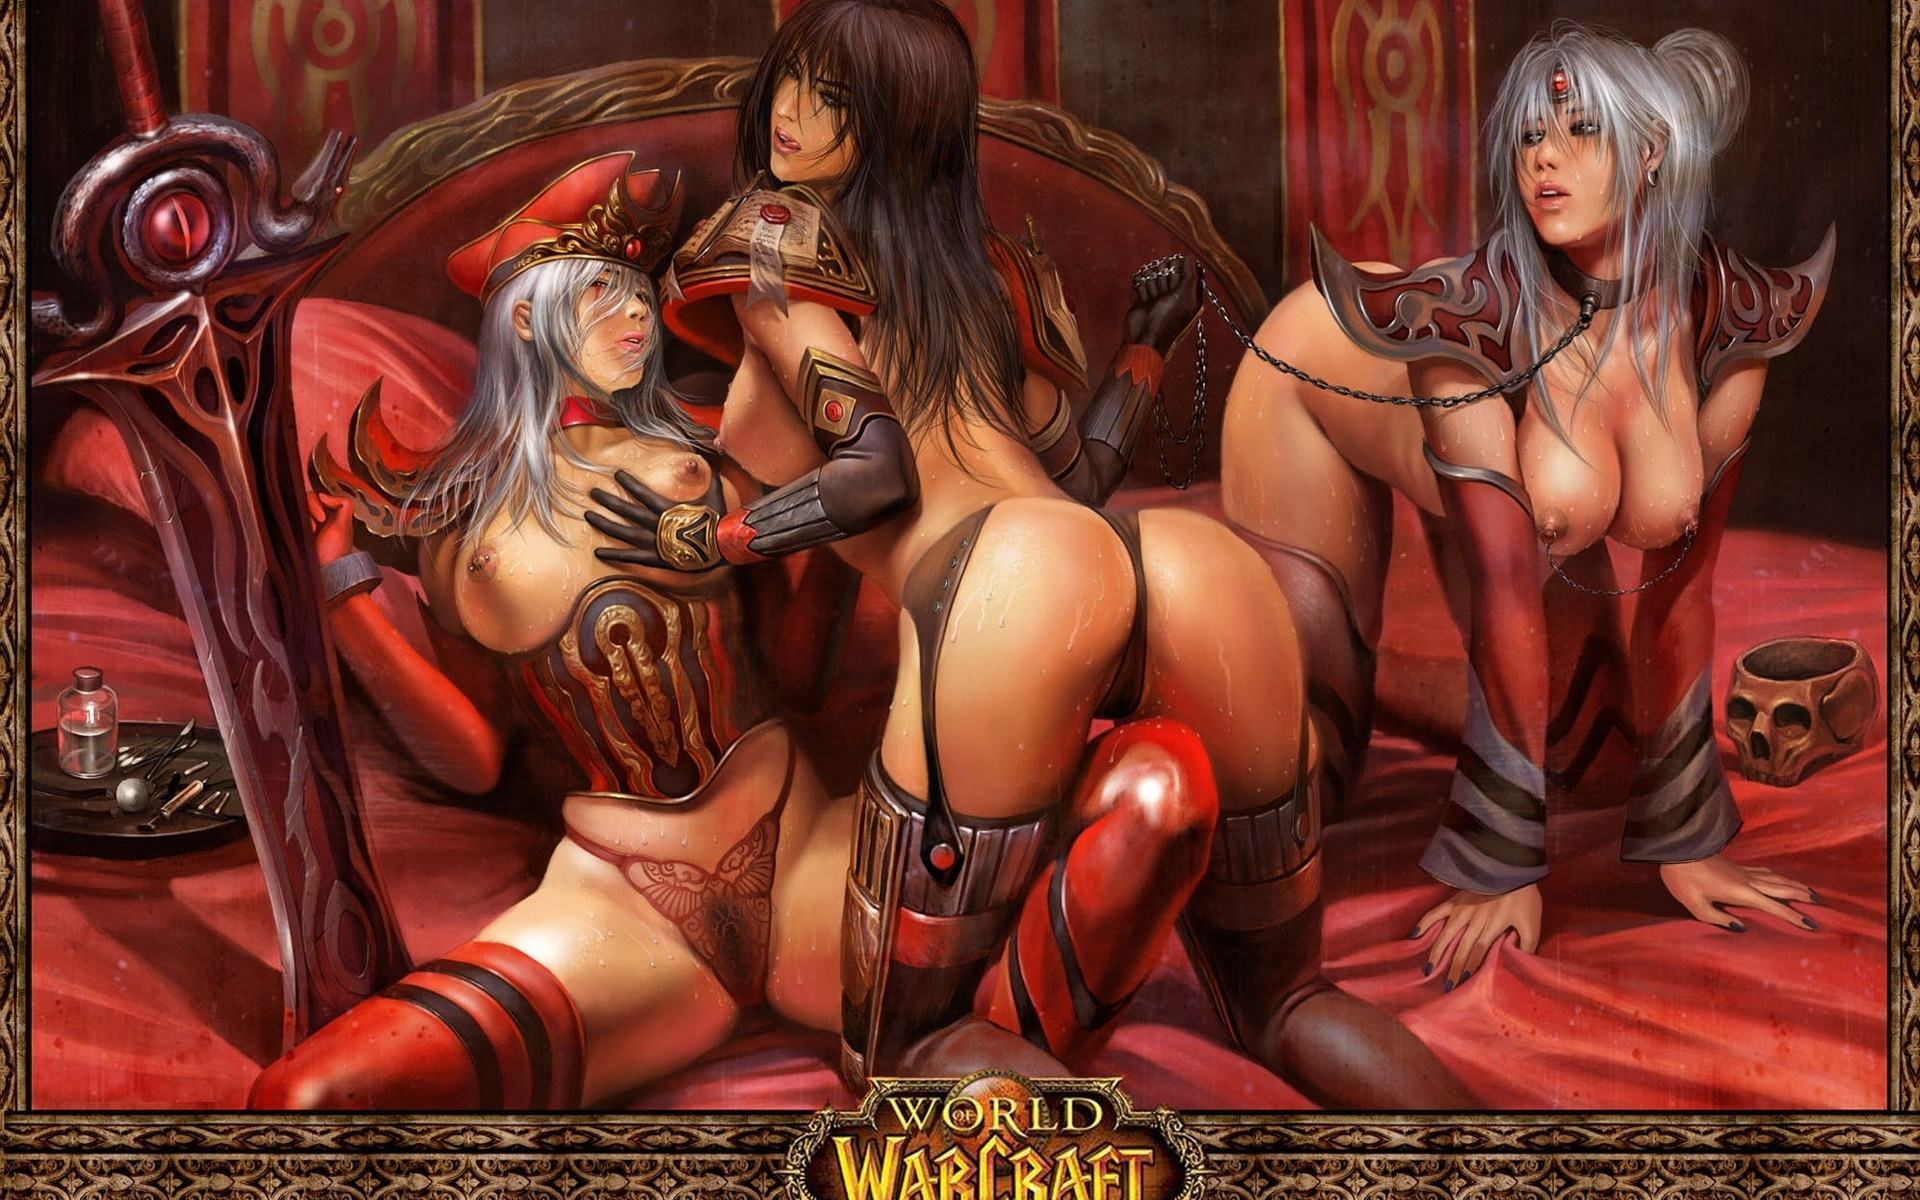 World of warcraft porn-sylvanas xxx image